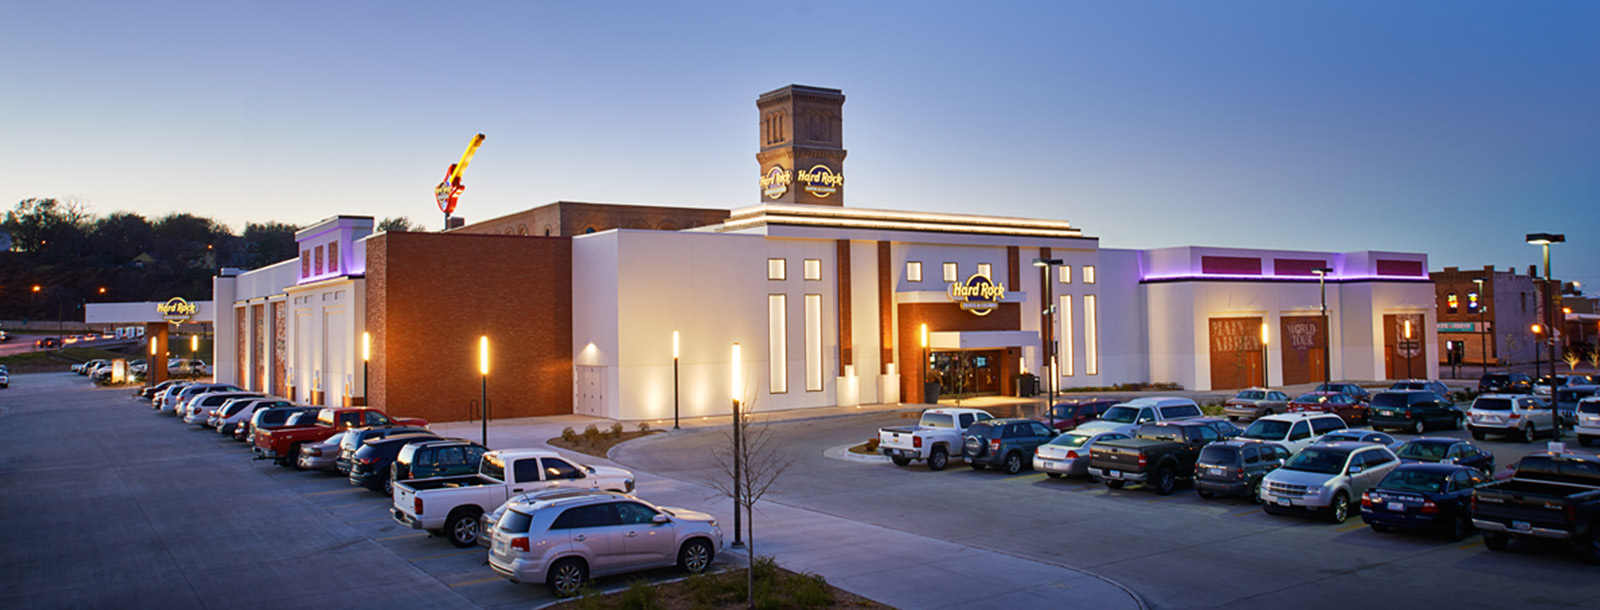 Parking Hard Rock Hotel Casino Sioux City